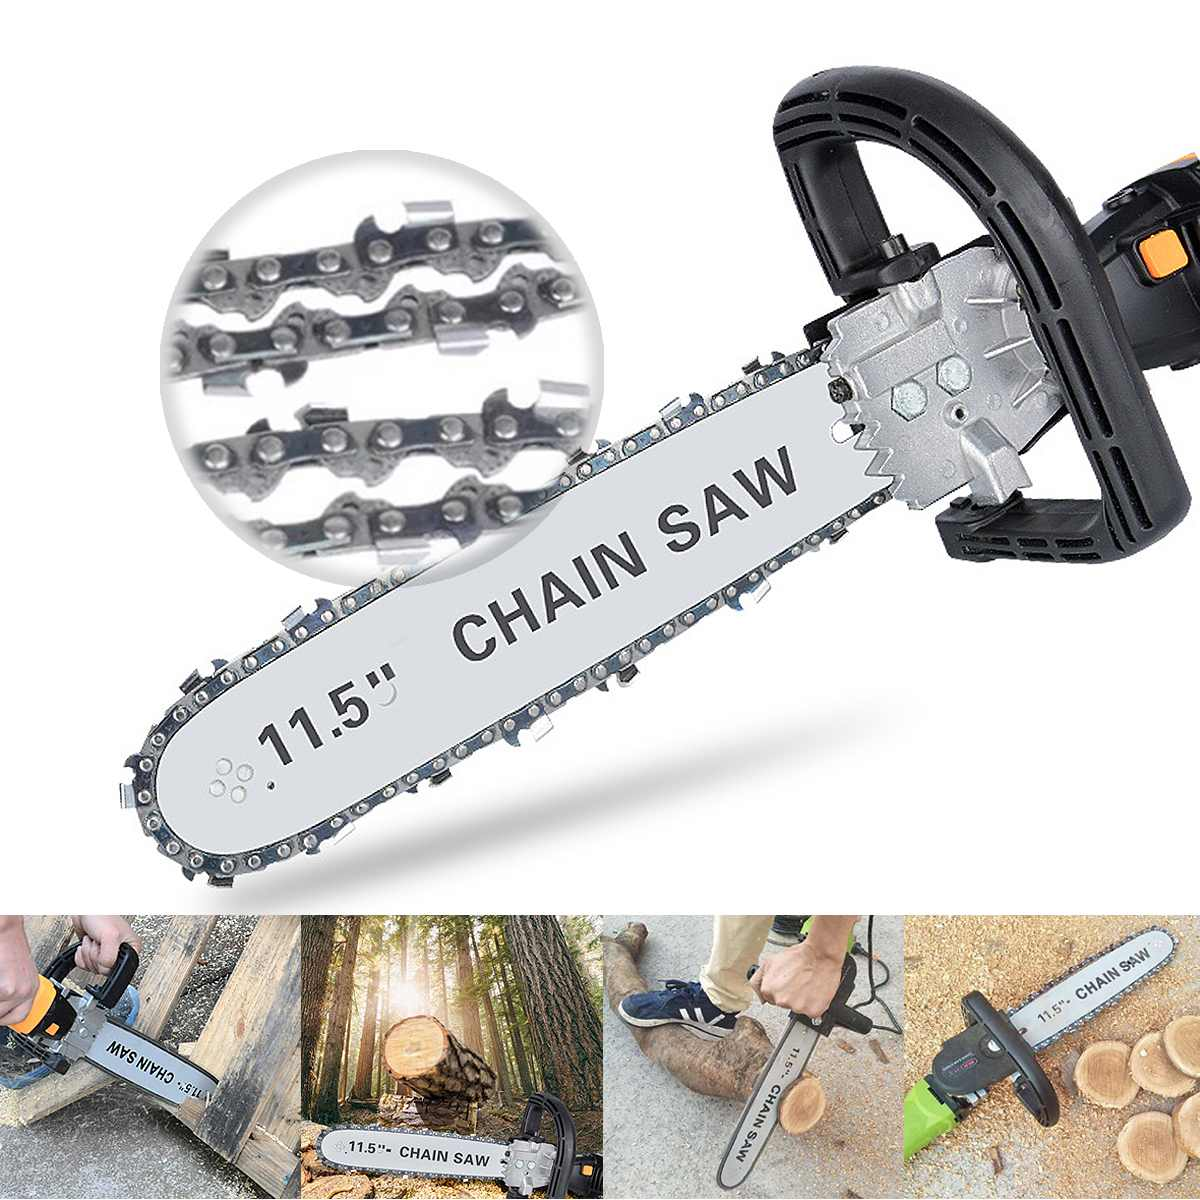 220V 650W Electric Chain Saw Angle Grinder Bracket Kit Chainsaw for Woodworking Cutting Saw Chain Tool Set Portable menu чаша black contour